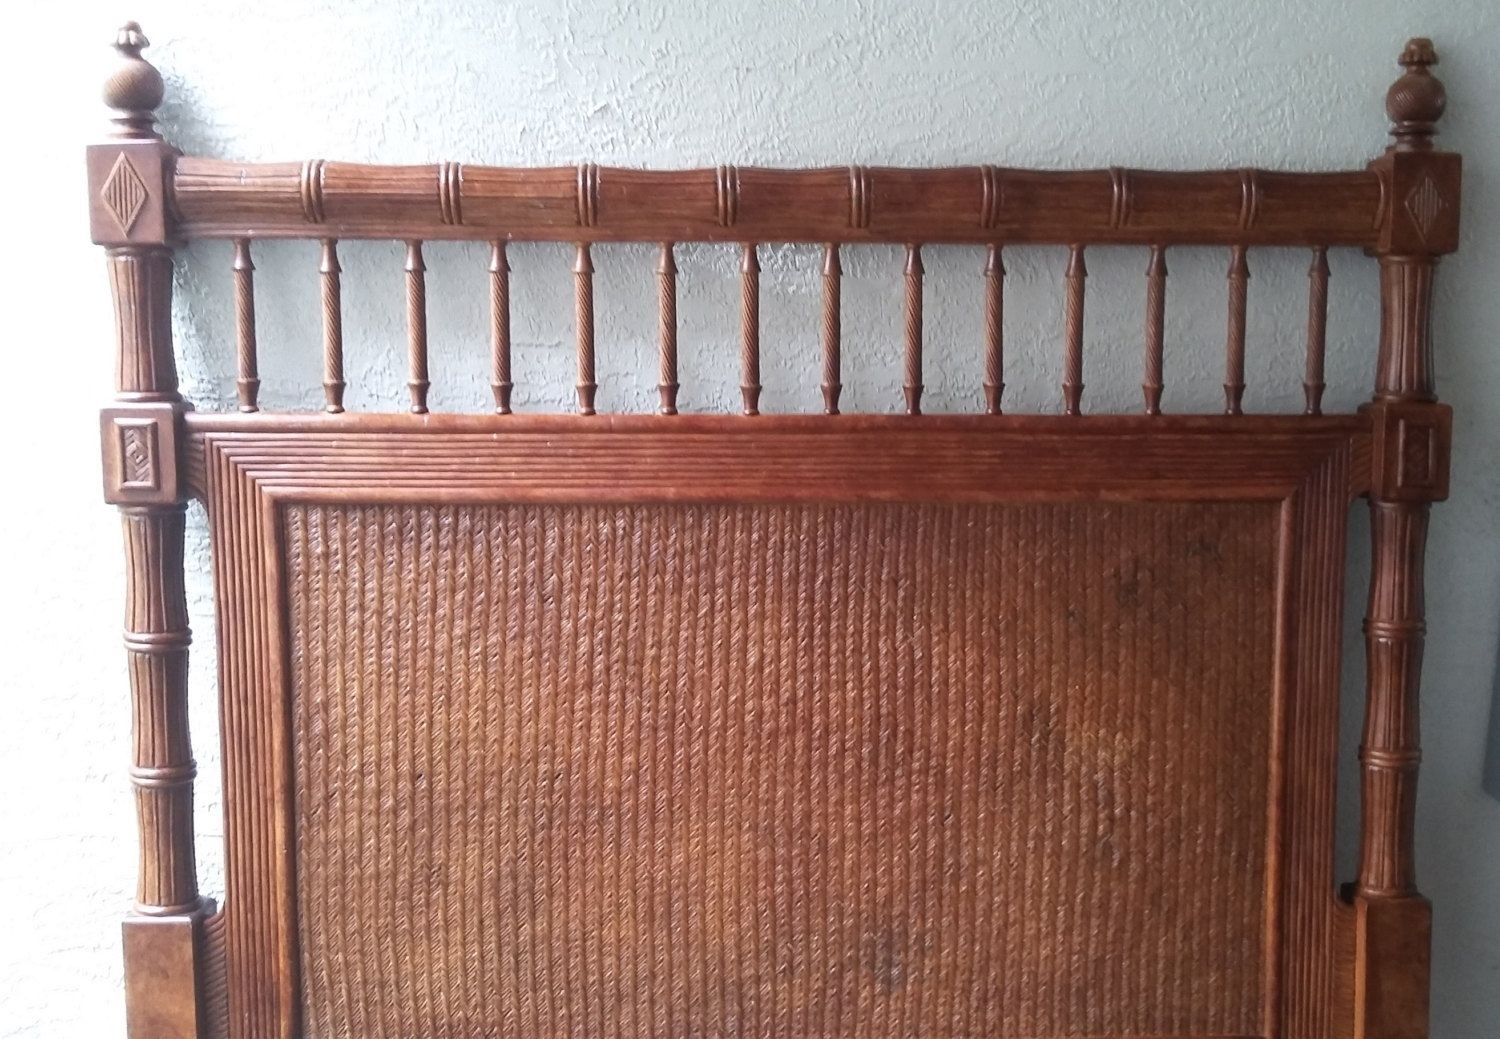 Tommy Bahama Style Faux Bamboo Rattan Queen Headboard by DEGFURNITUREDESIGNS on Etsy